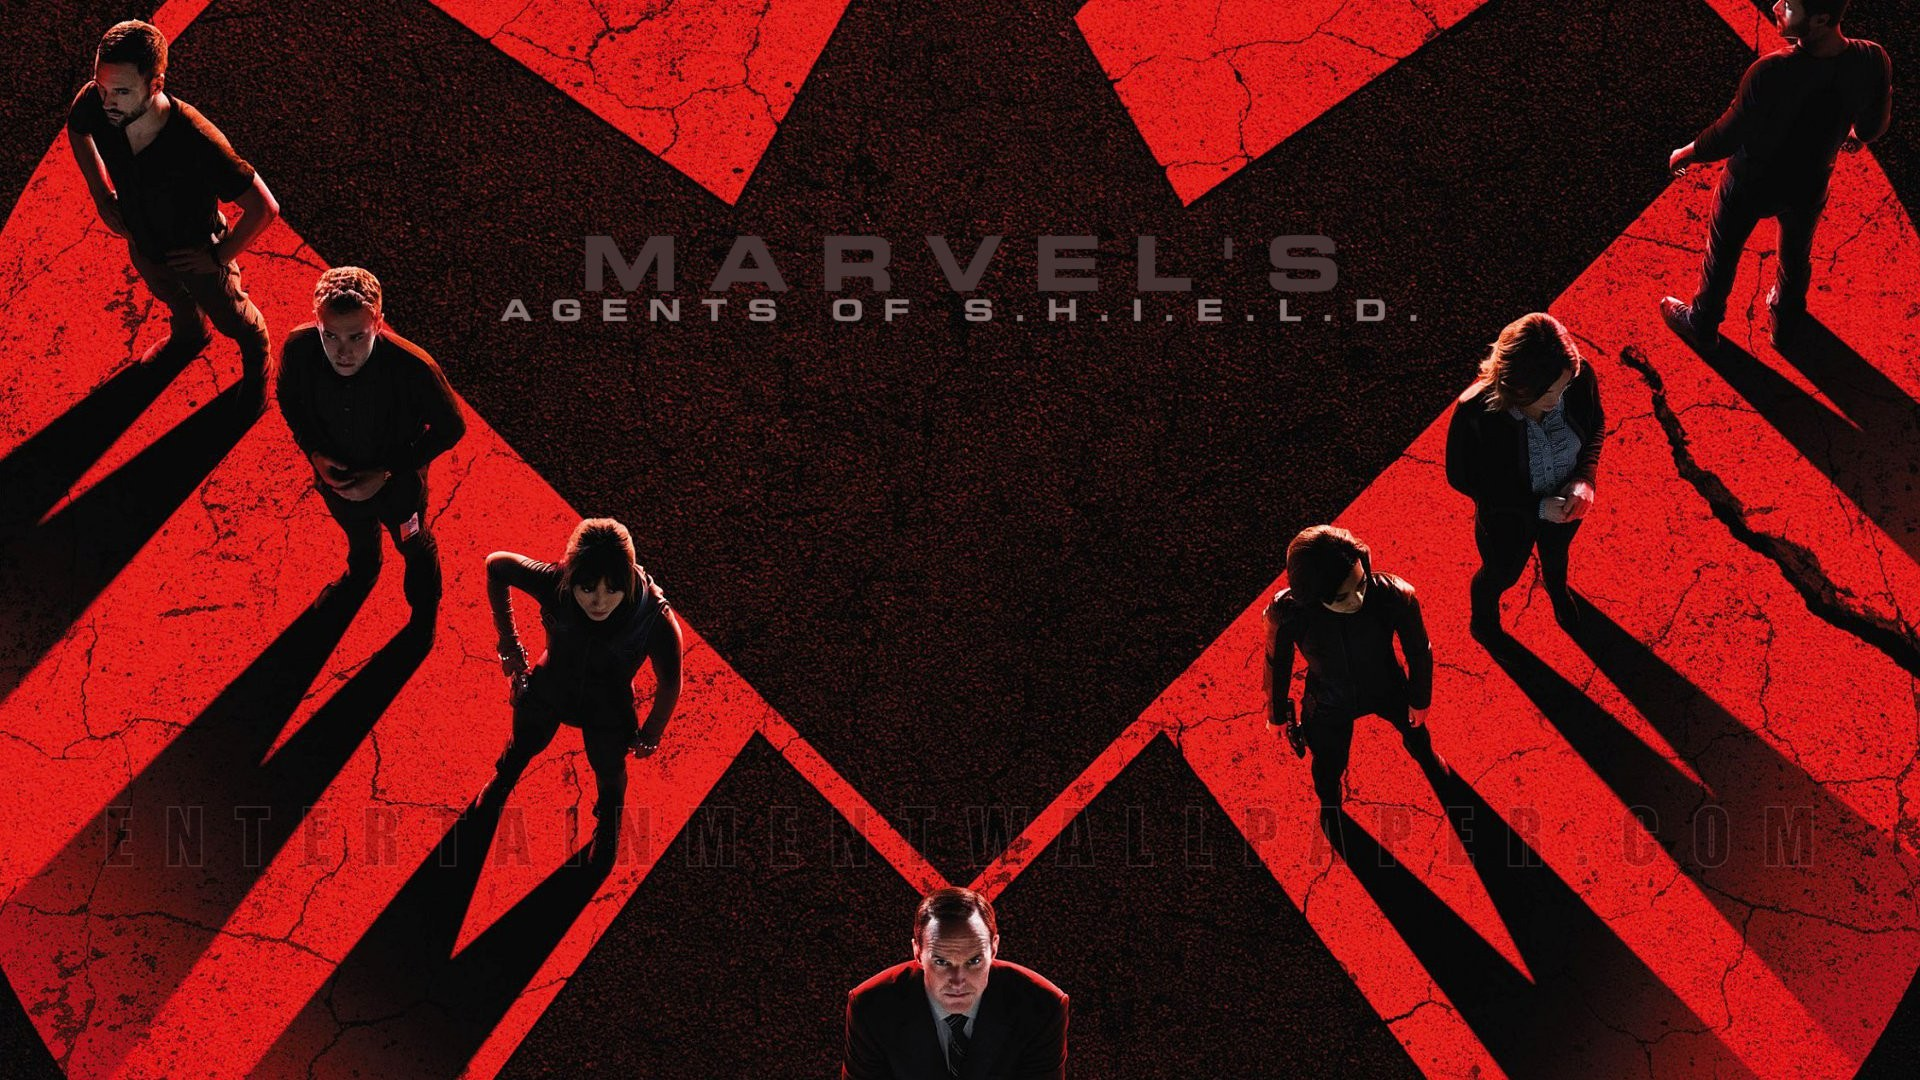 Agents Of Shield Wallpaper (7 Wallpapers)